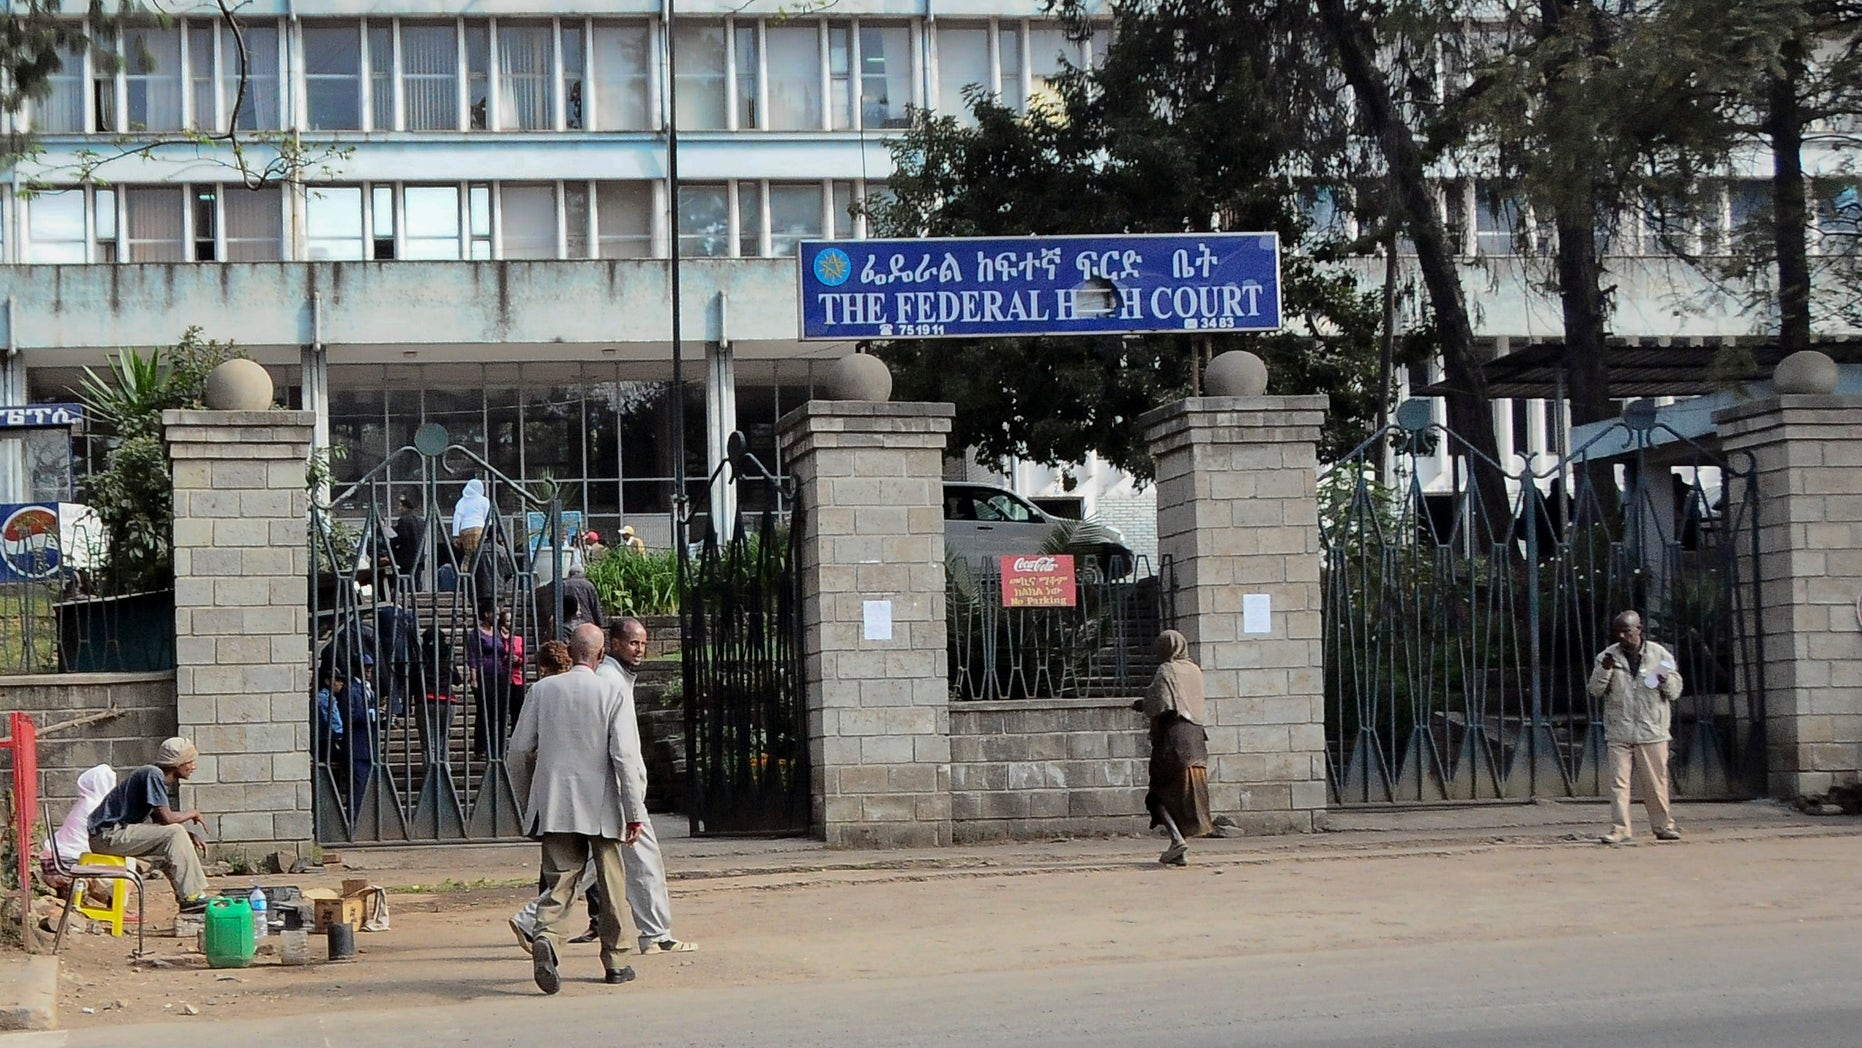 Nov. 1, 2011: Pedestrians walk past the Federal High Court building in Addis Ababa, Ethiopia.